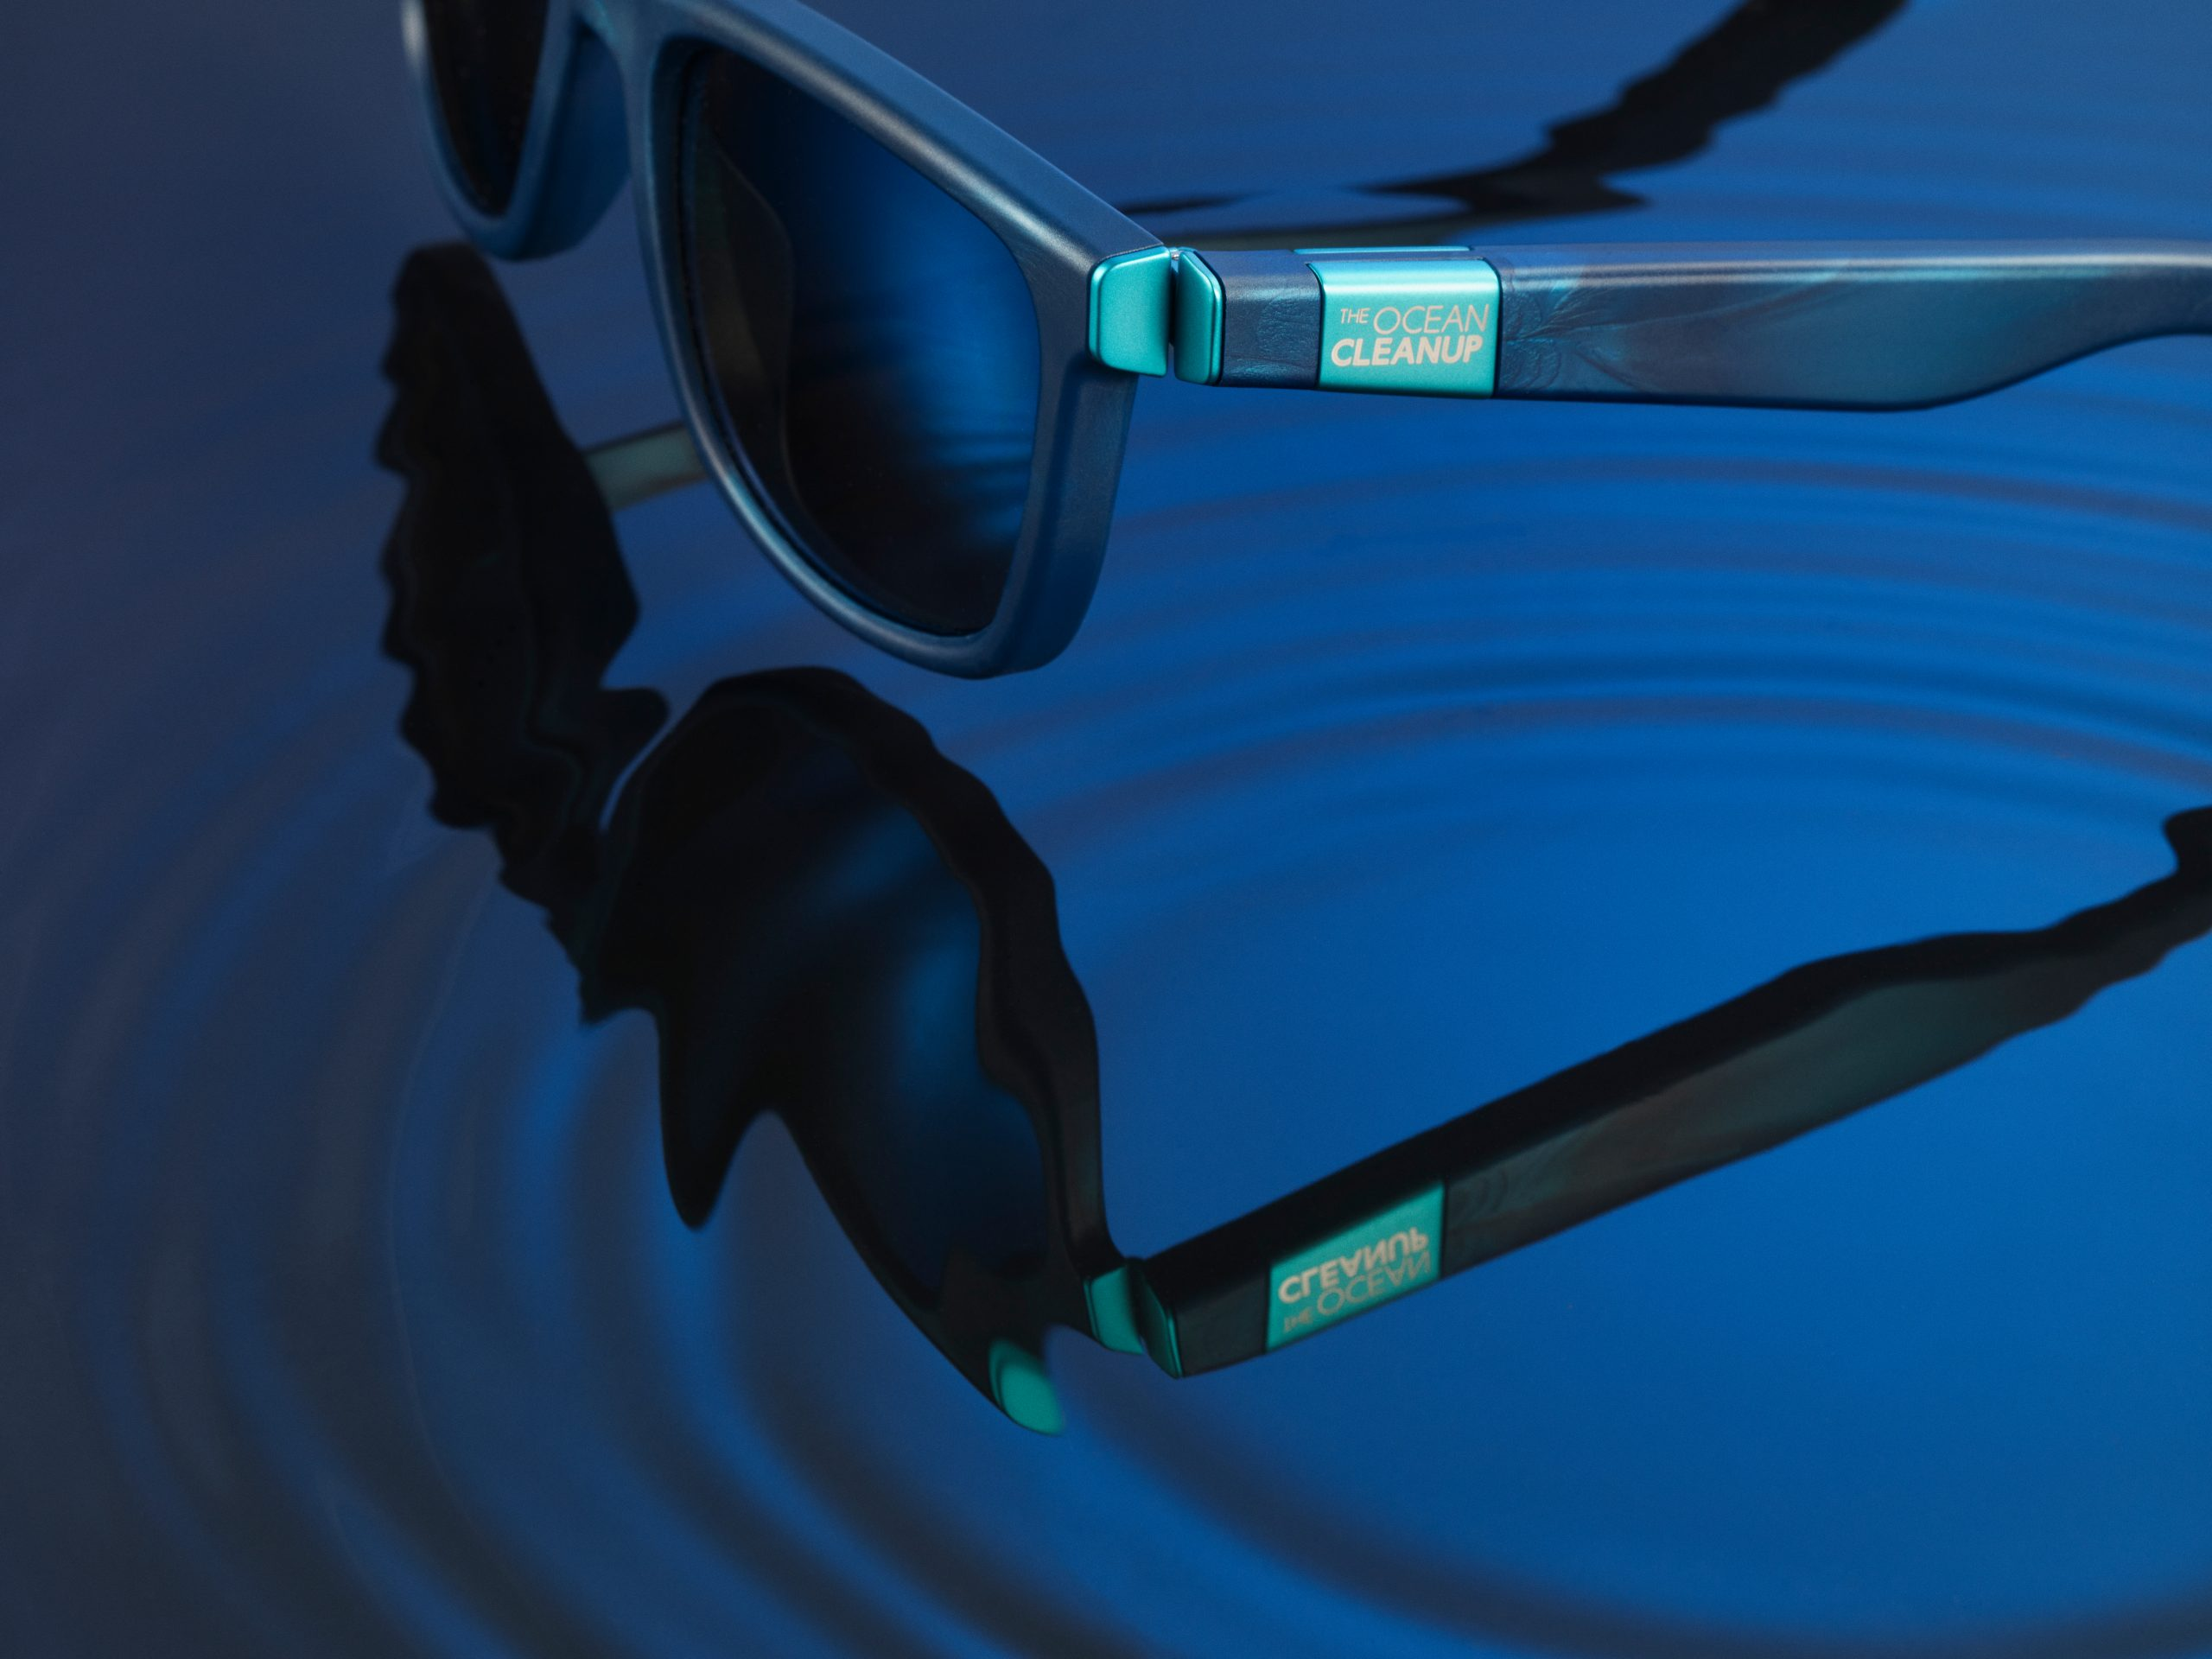 TheOceanCleanup Sunglasses HiRes 9.1 1 scaled - floomedia